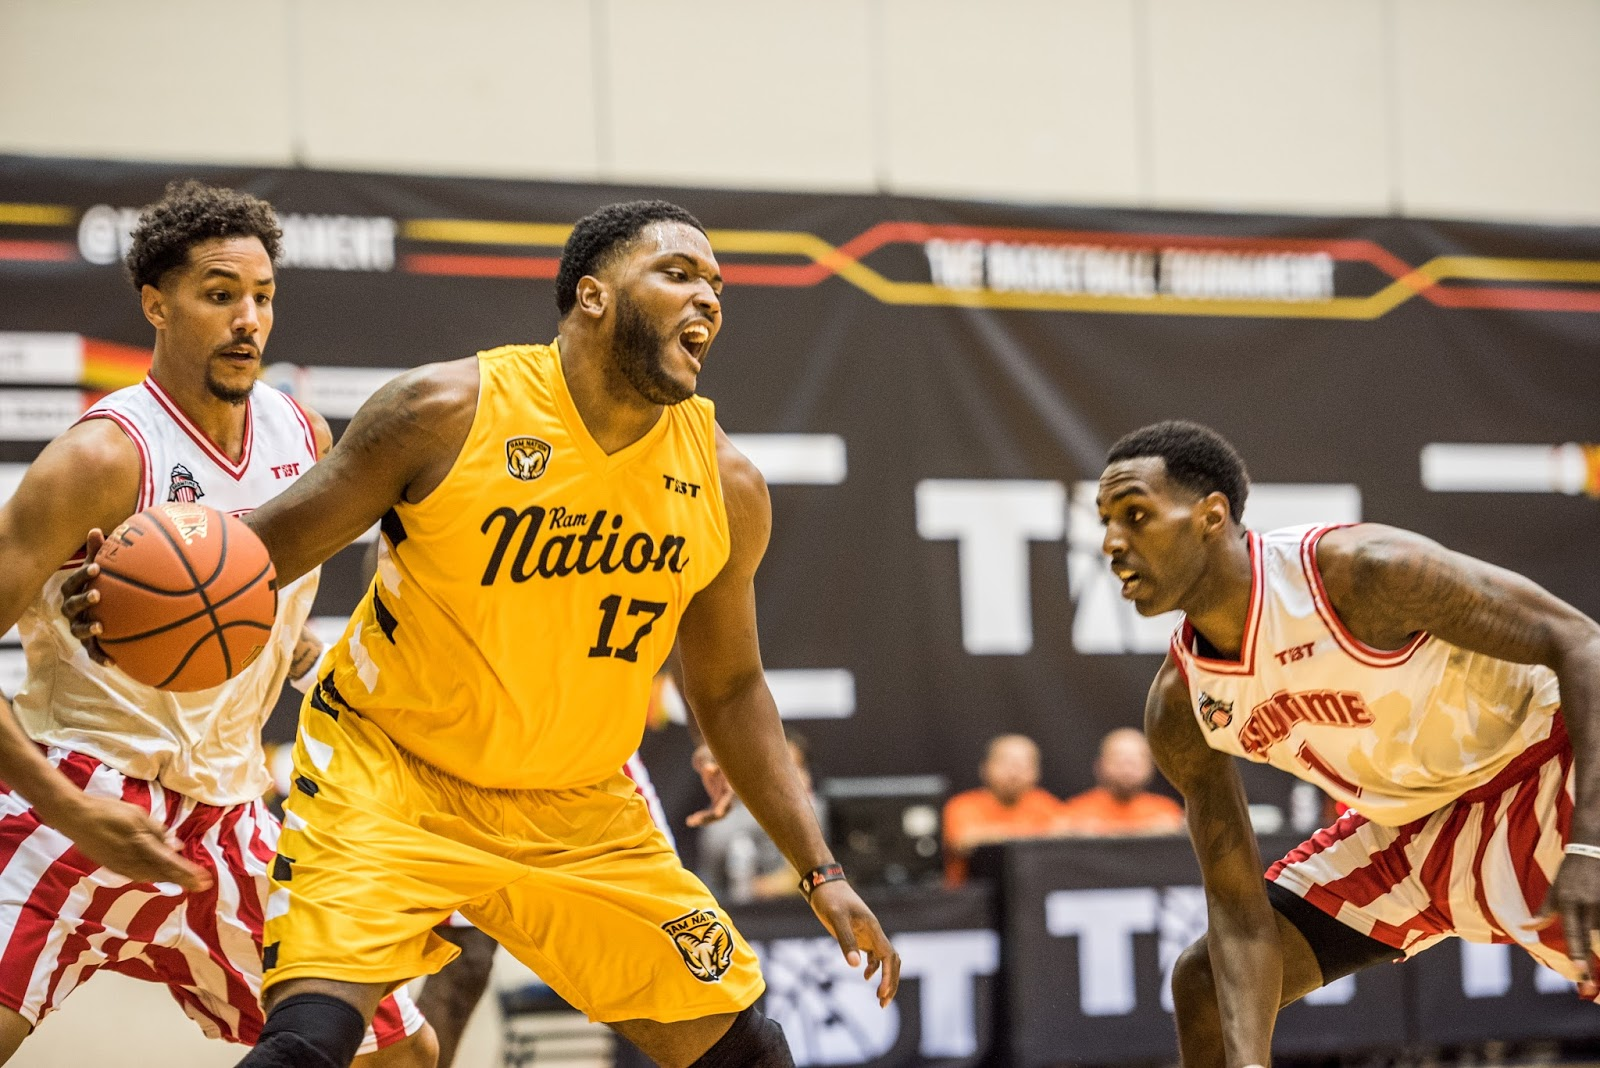 1b083a927823 Ram Nation returns to TBT quarterfinals with commanding win